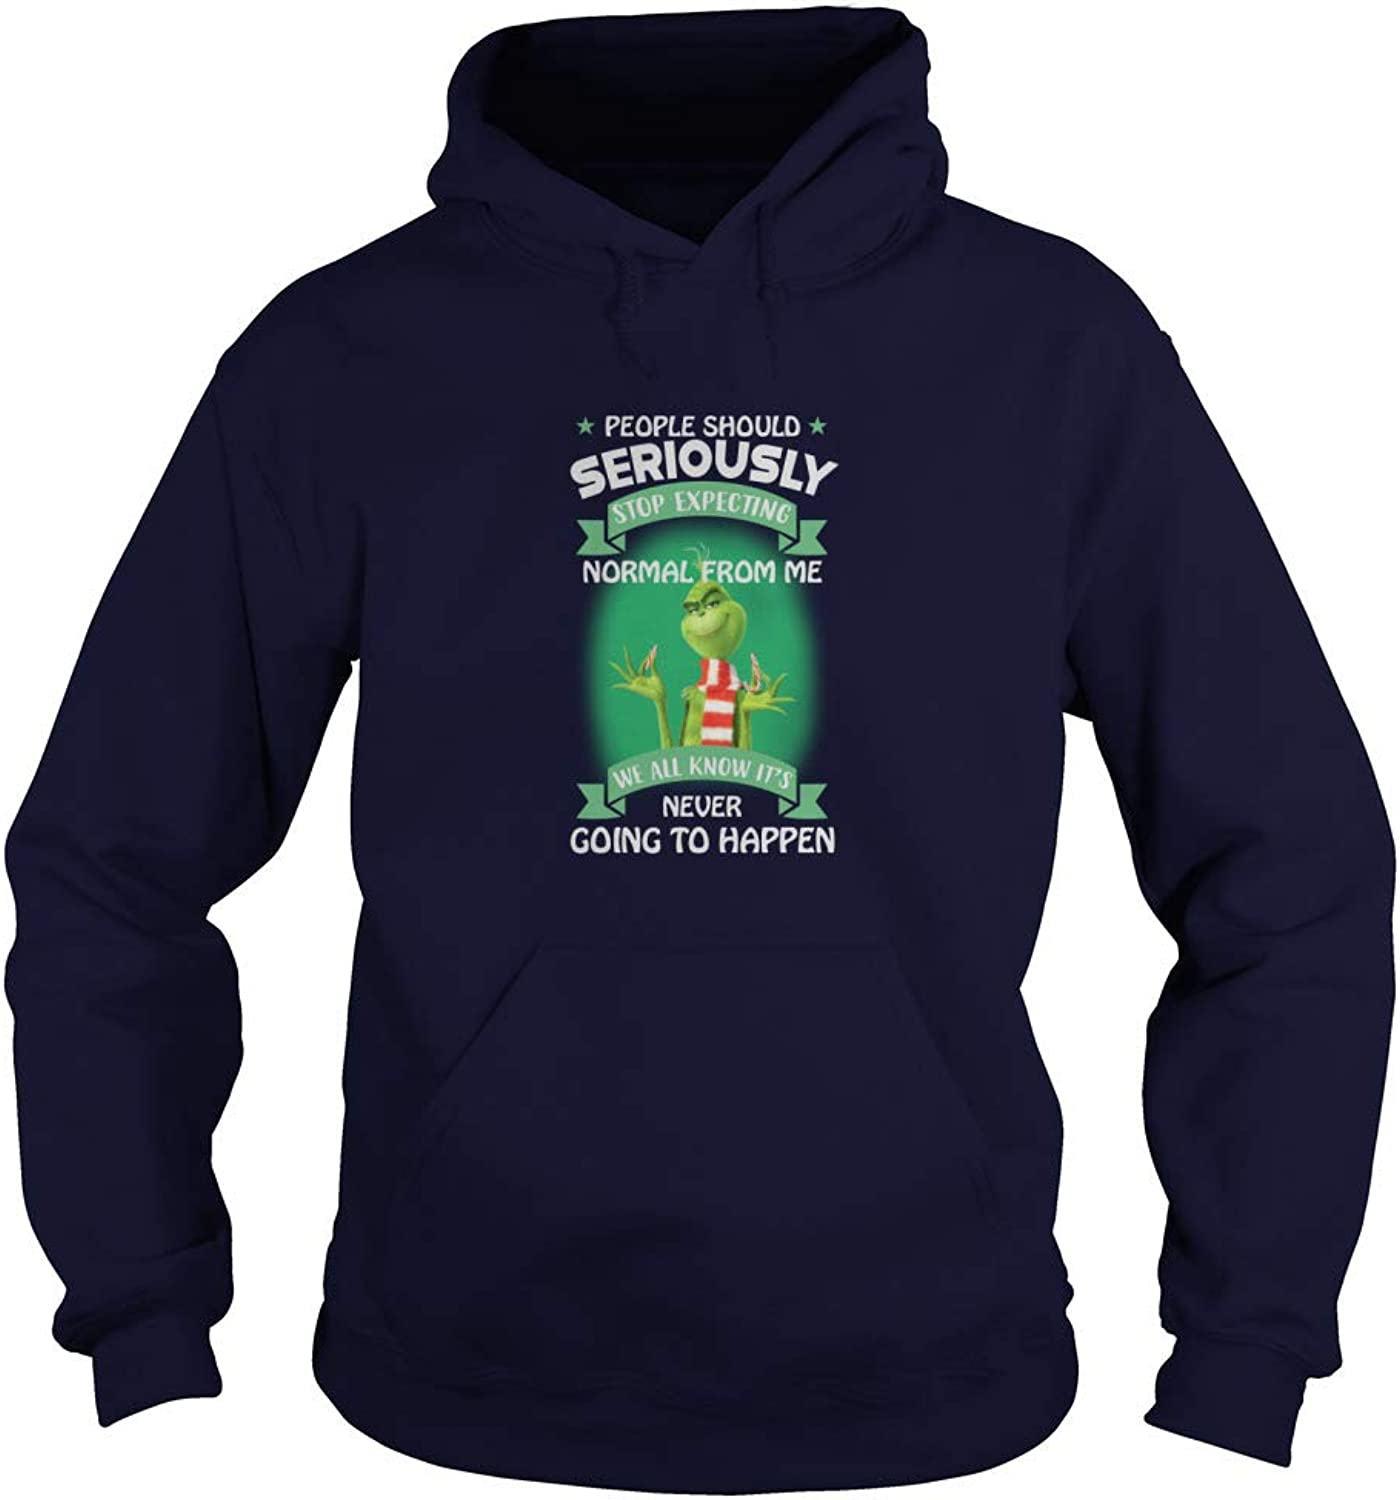 TeeWarrior Grinch People Should Seriously Stop Expecting Normal from Me We All Know It's Never Going to Happen TShirt